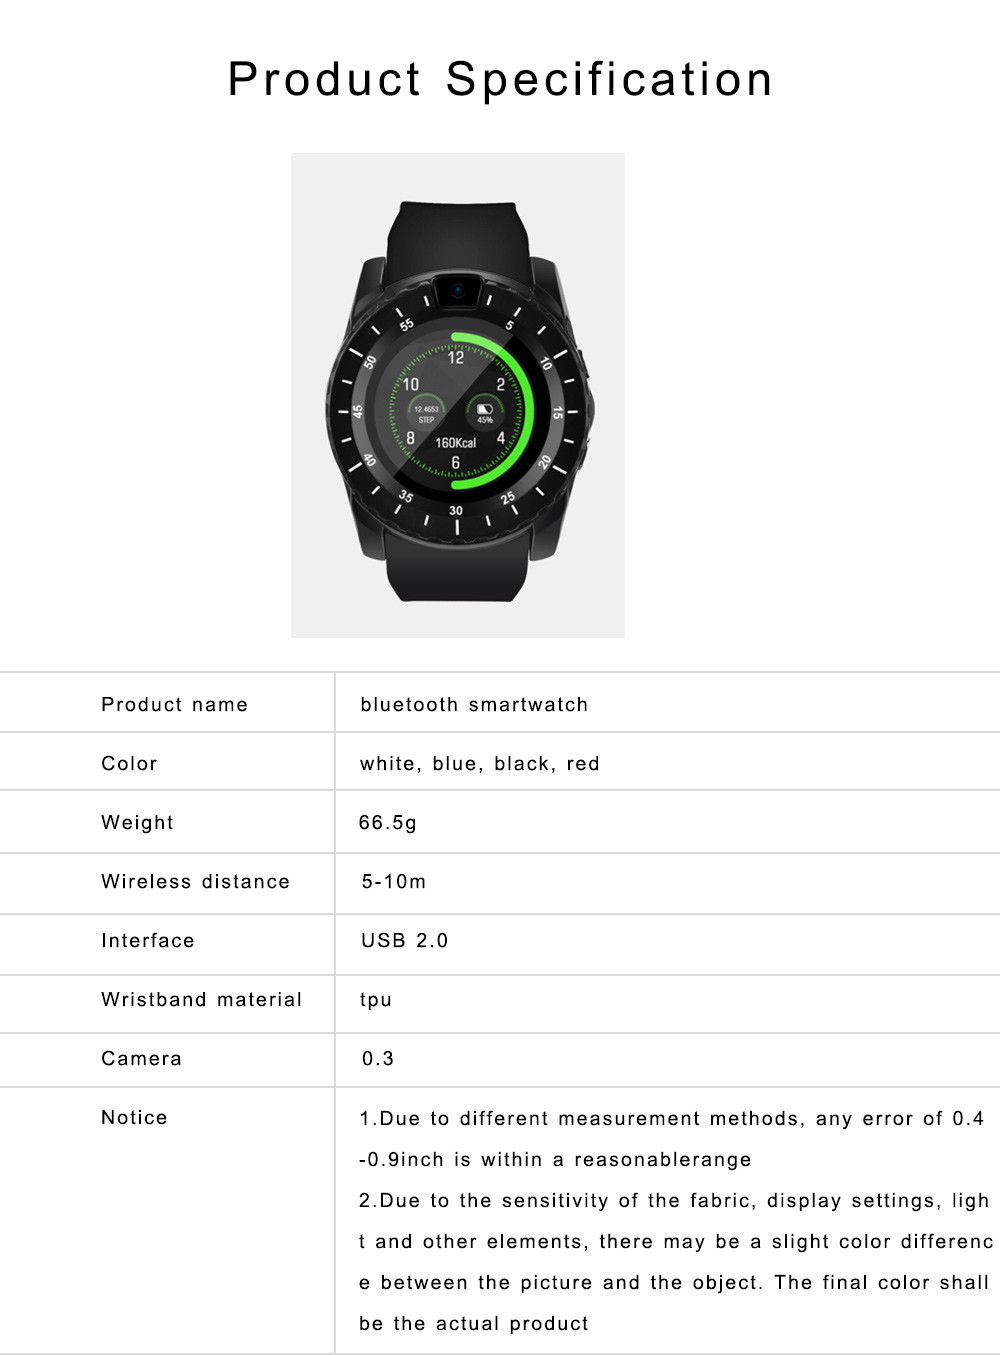 Bluetooth Smartwatch with HD Display, Wide Compatibility Power Watch with Camera, Sports Fitness Tracker, Music Player, Image Viewer 6